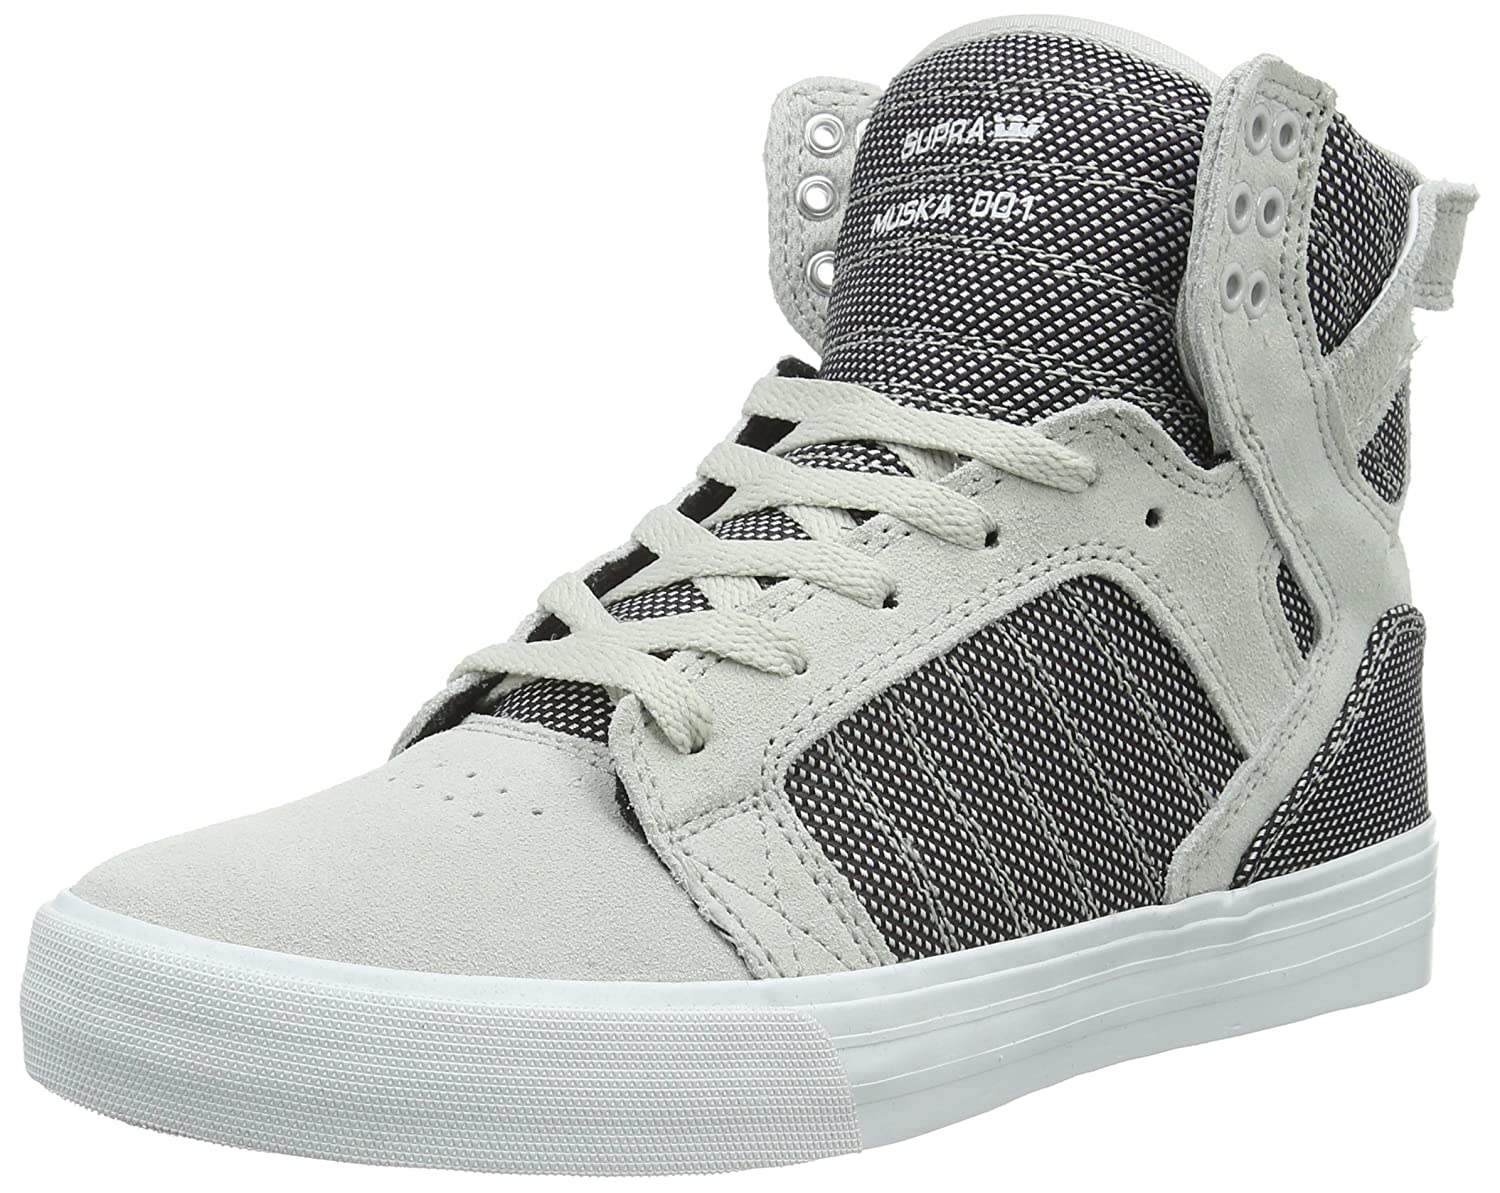 8fd60b7736a Supra Skytop Grey Violet Two-Tone/White Men's Skate Shoes: Buy Online at  Low Prices in India - Amazon.in